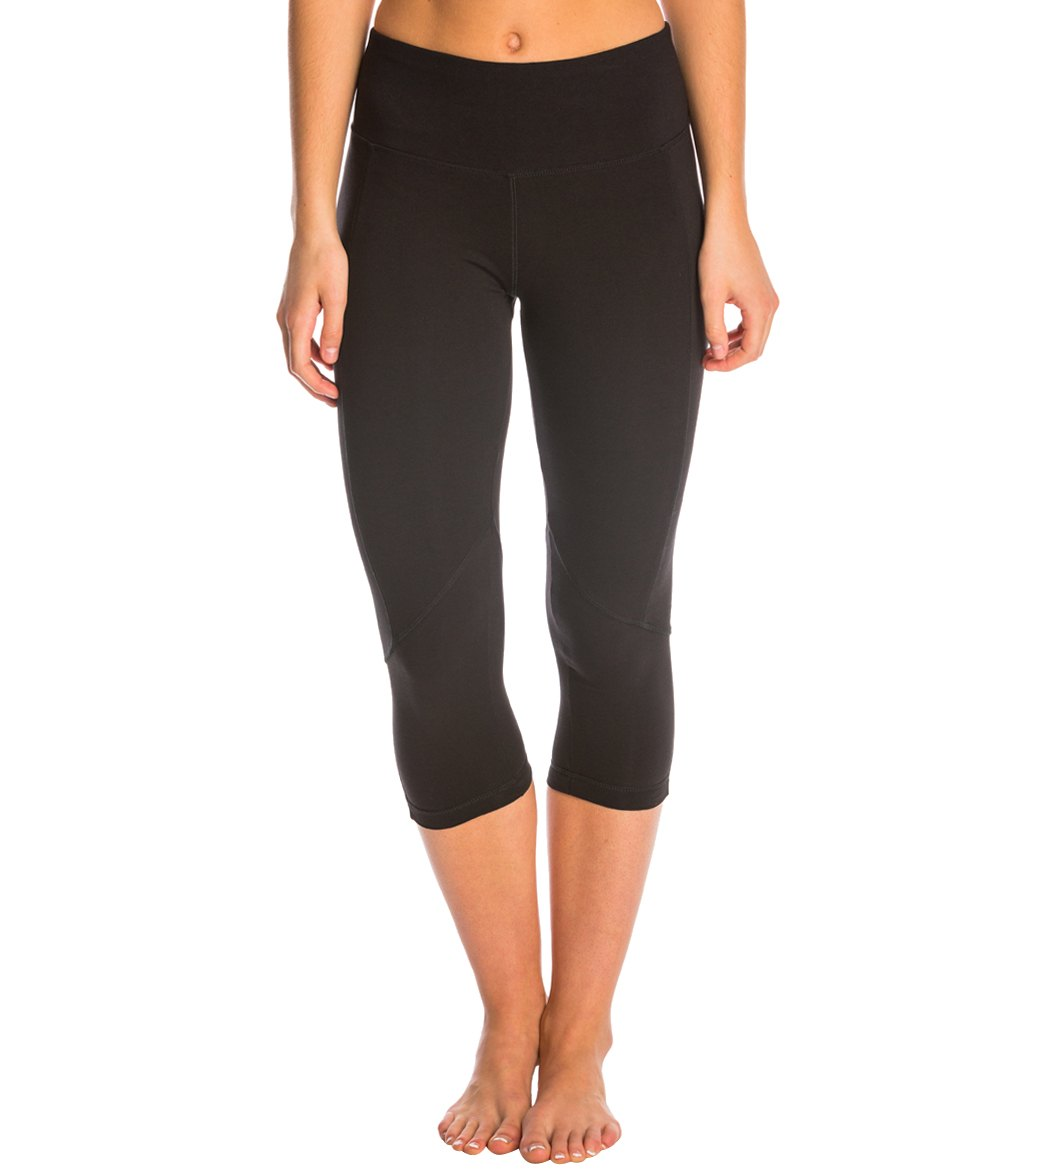 Marika Carrie Ultimate Slimming Yoga Capris at YogaOutlet.com